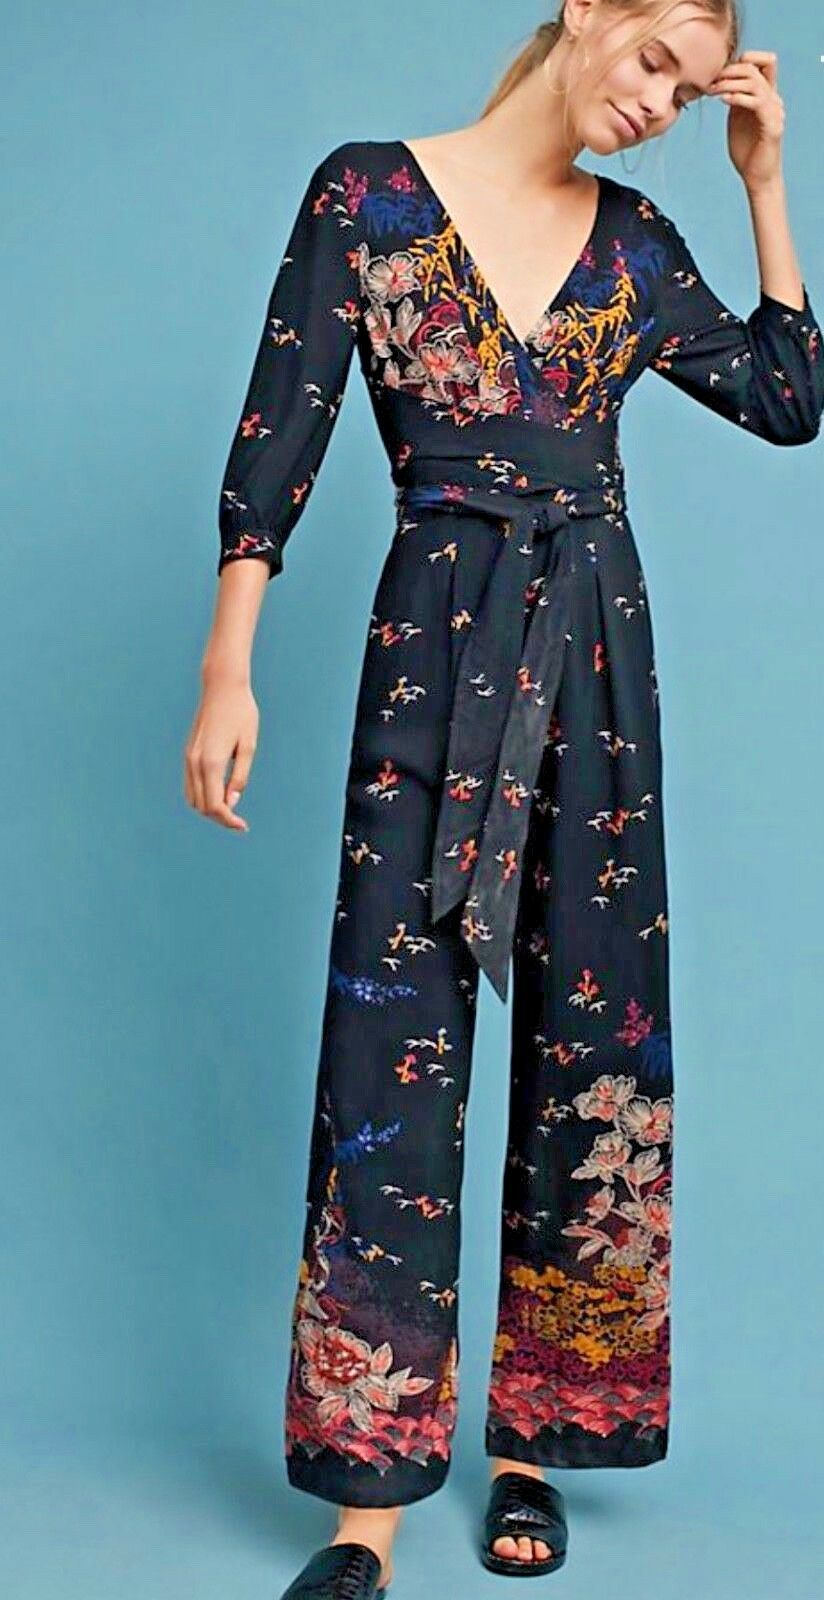 NWT Anthropologie  168 Romper Jumpsuit  size 4-Fast Shipping